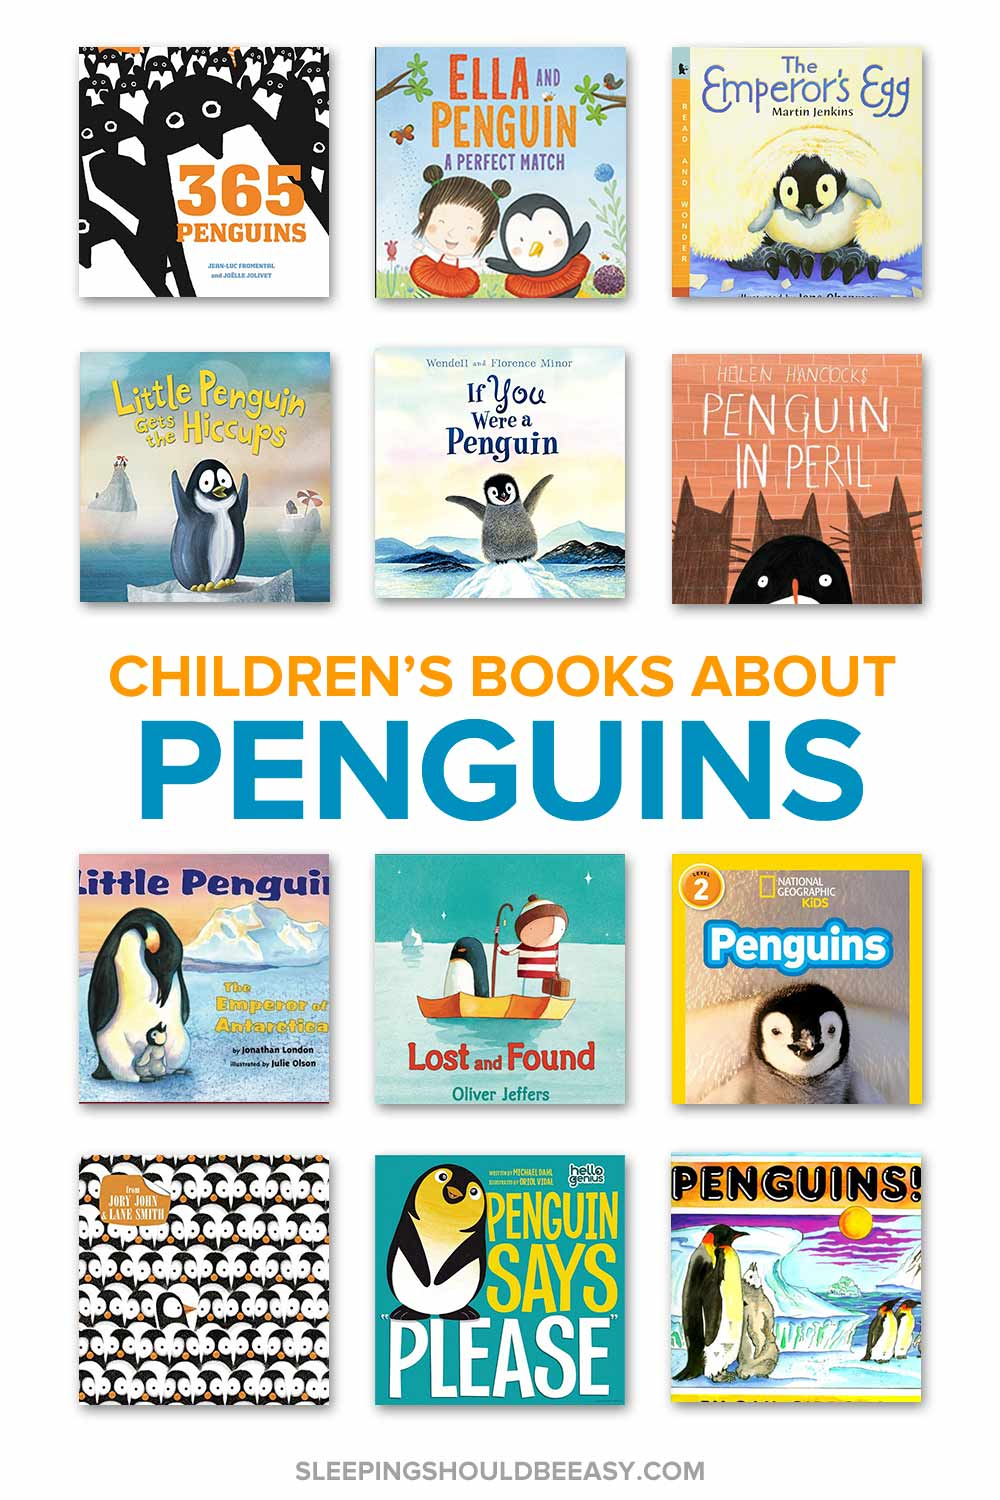 A collection of children's books about penguins